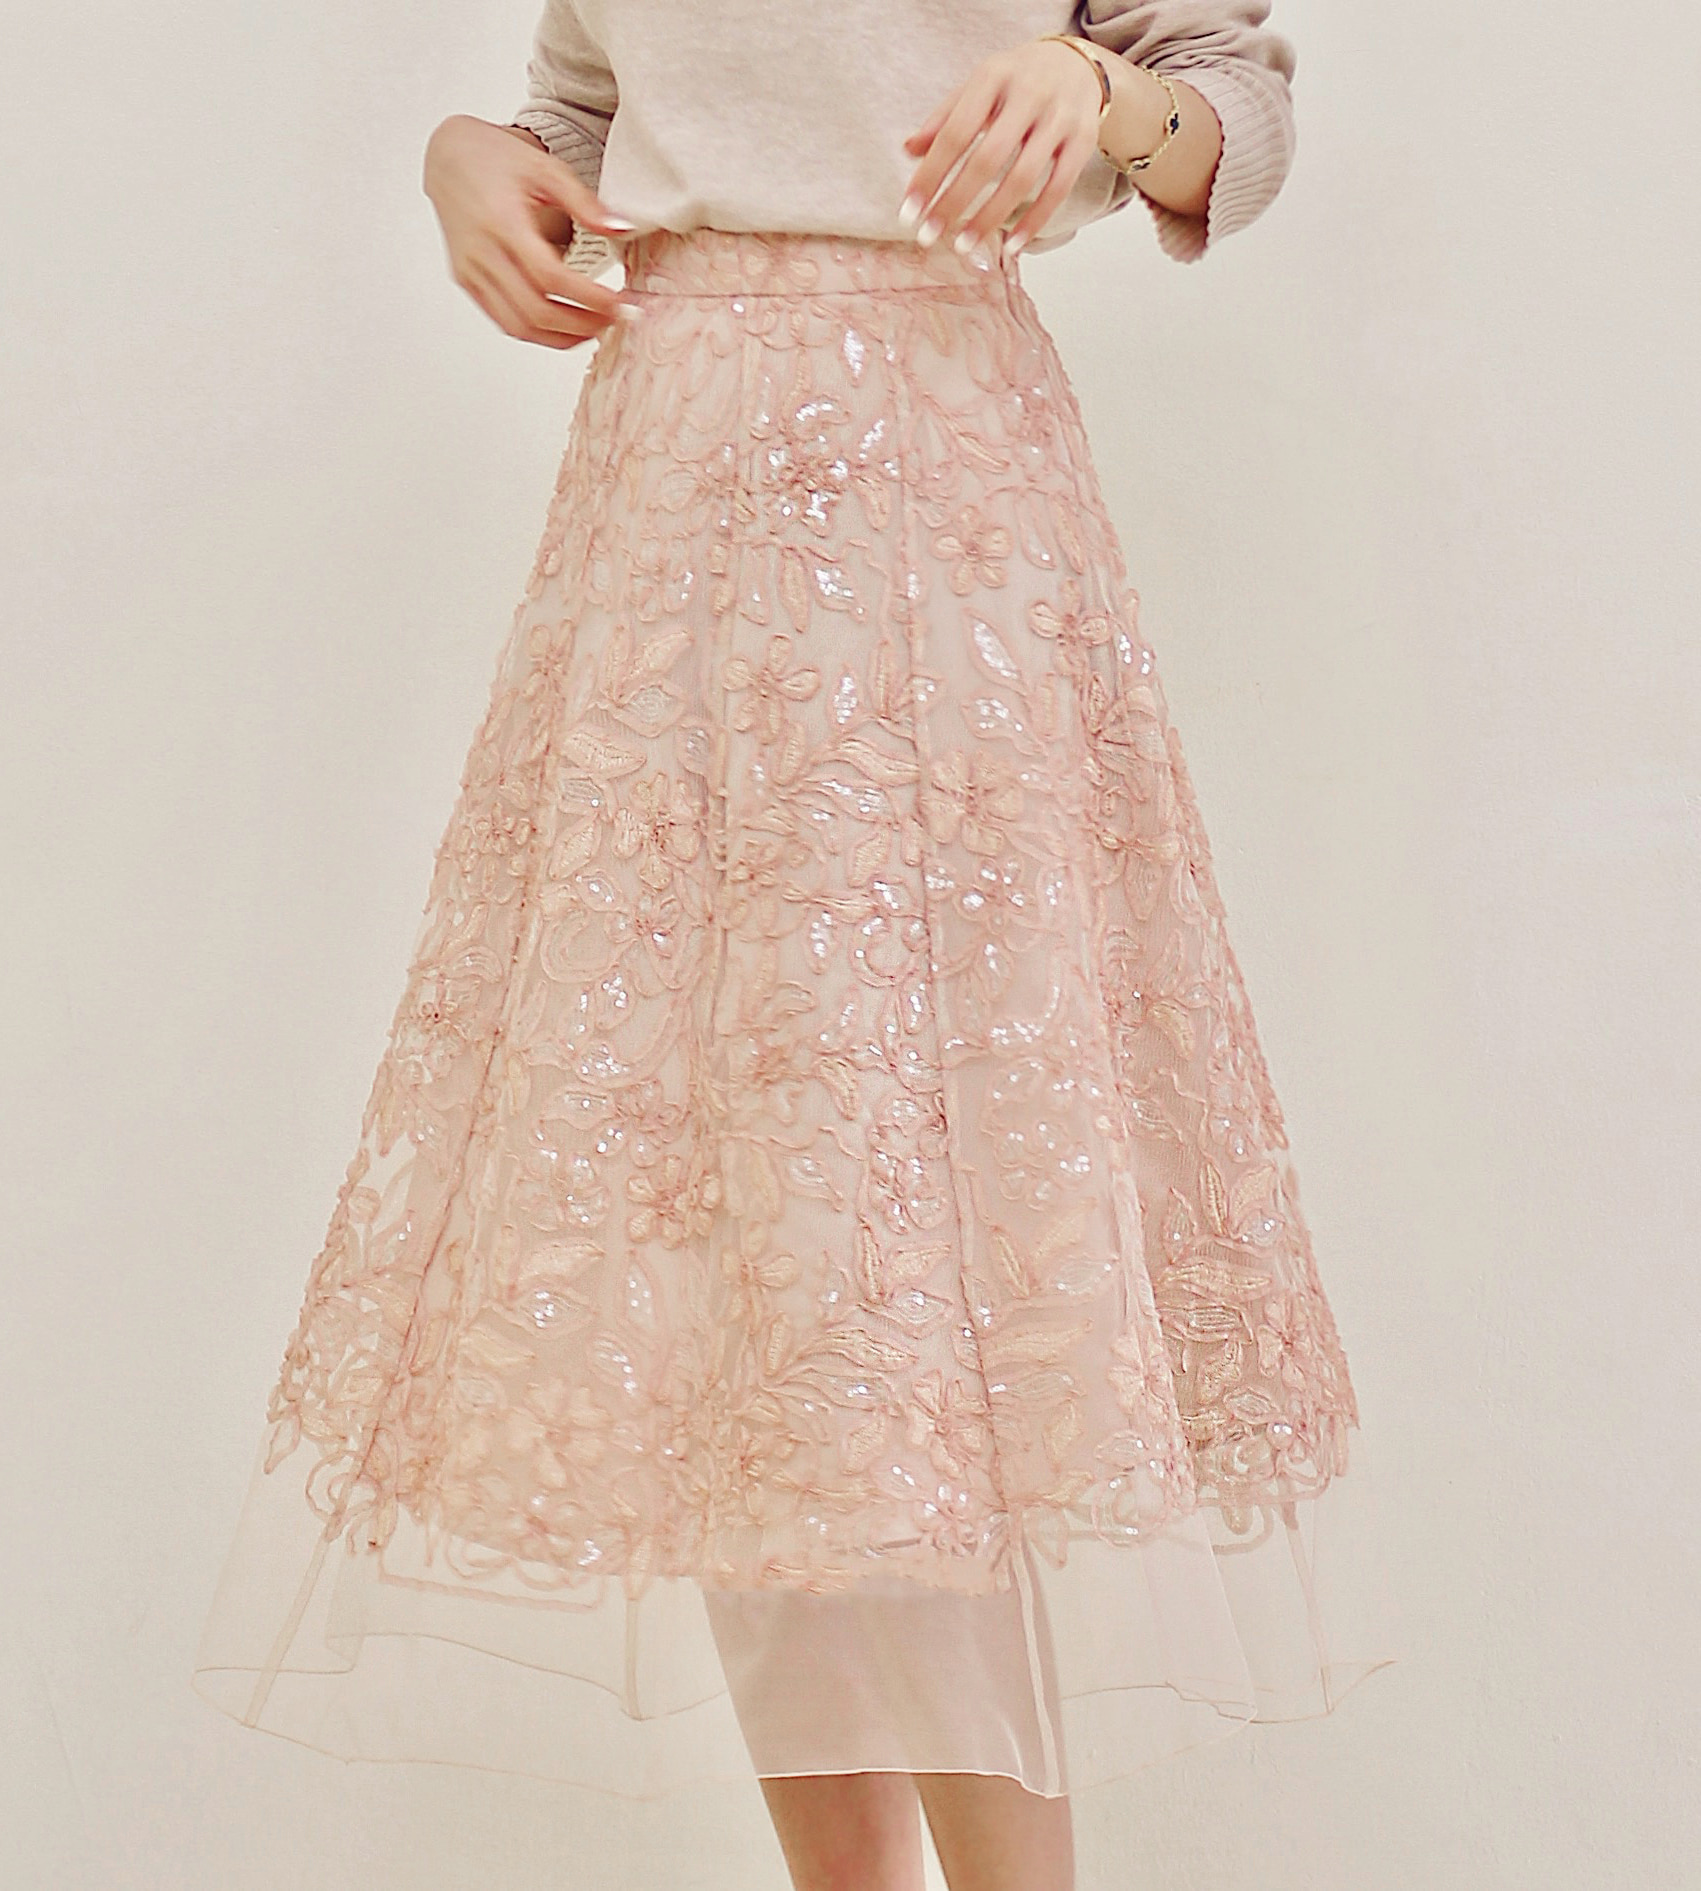 bloom lace skirt